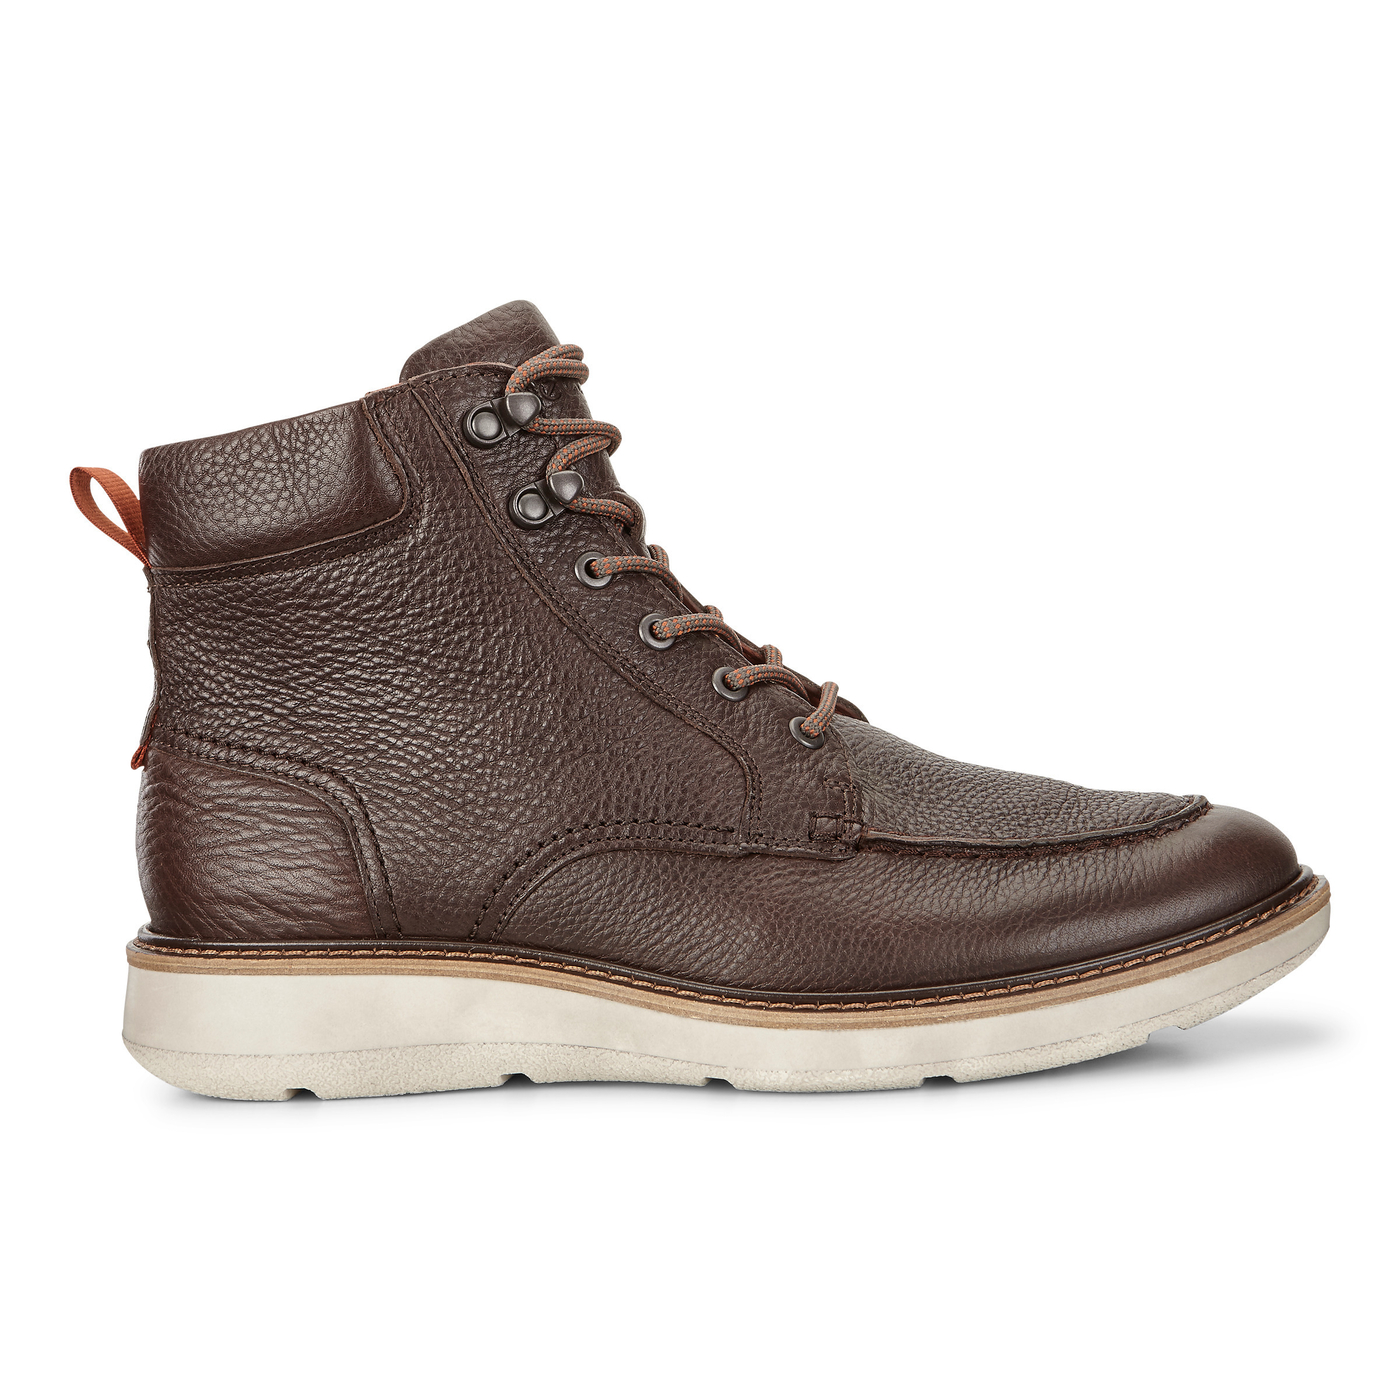 ECCO AURORA Mens Boot